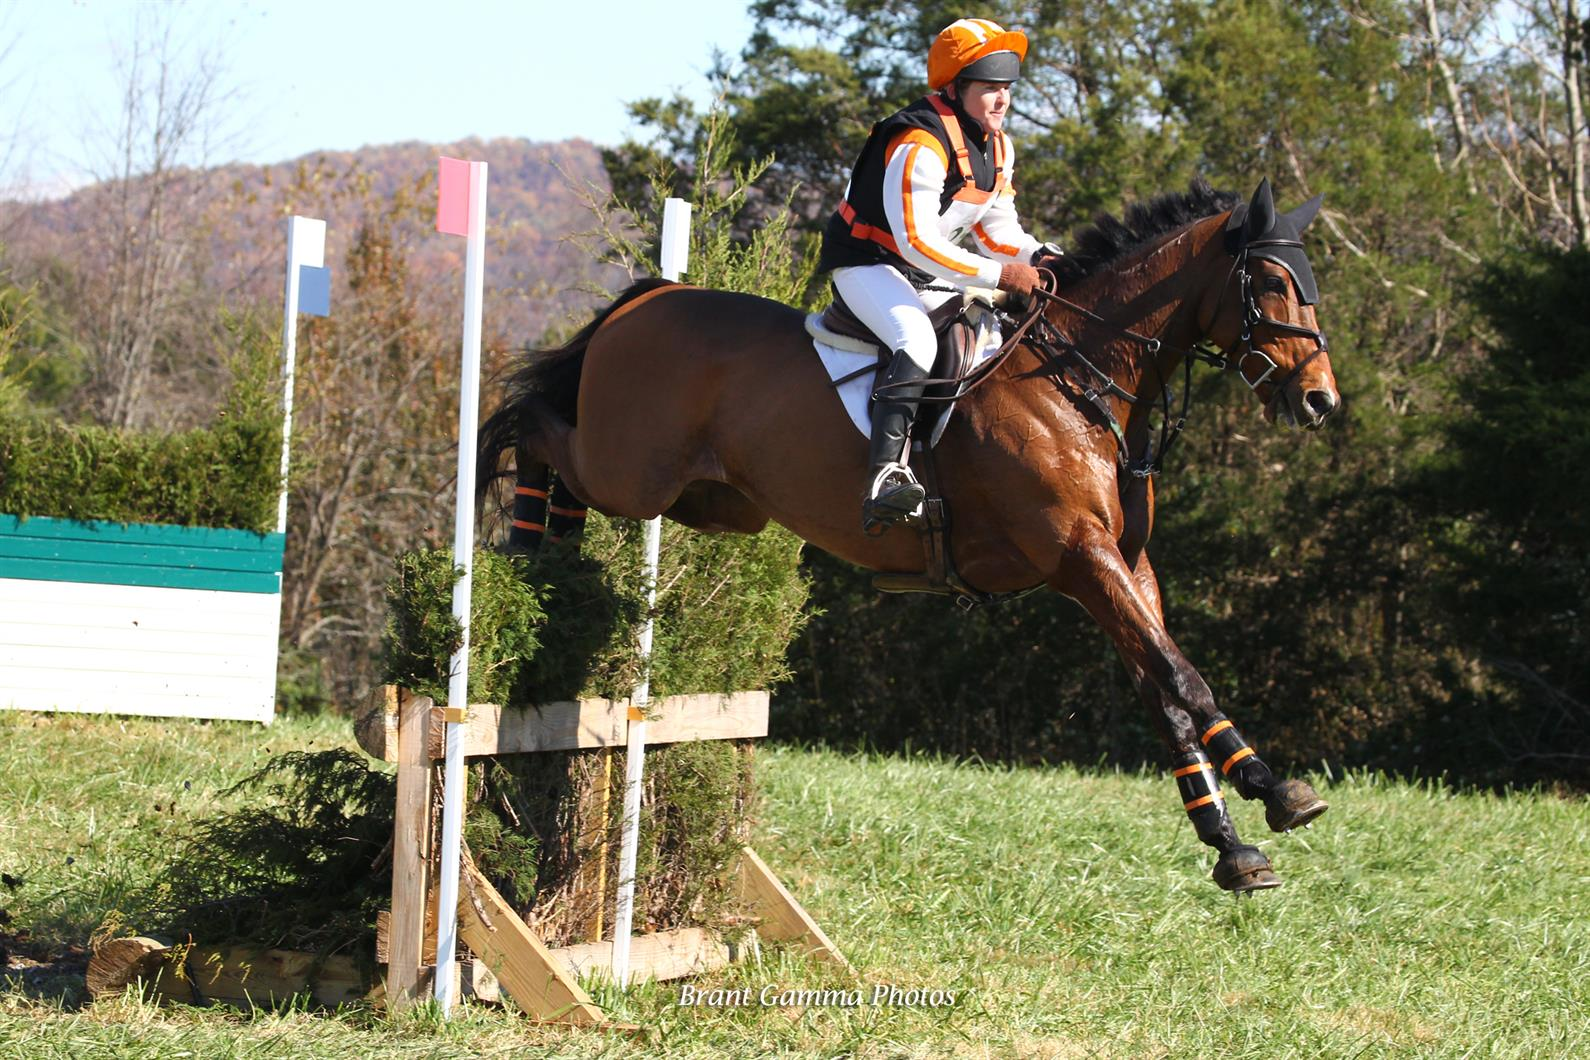 Sharon White Pulls Ahead After Cross-Country in the USEF CCI1* Eventing National Championship; Kelsey Ann Quinn Maintains the Lead in the USEF CCI1*-JR/YR Eventing National Championship